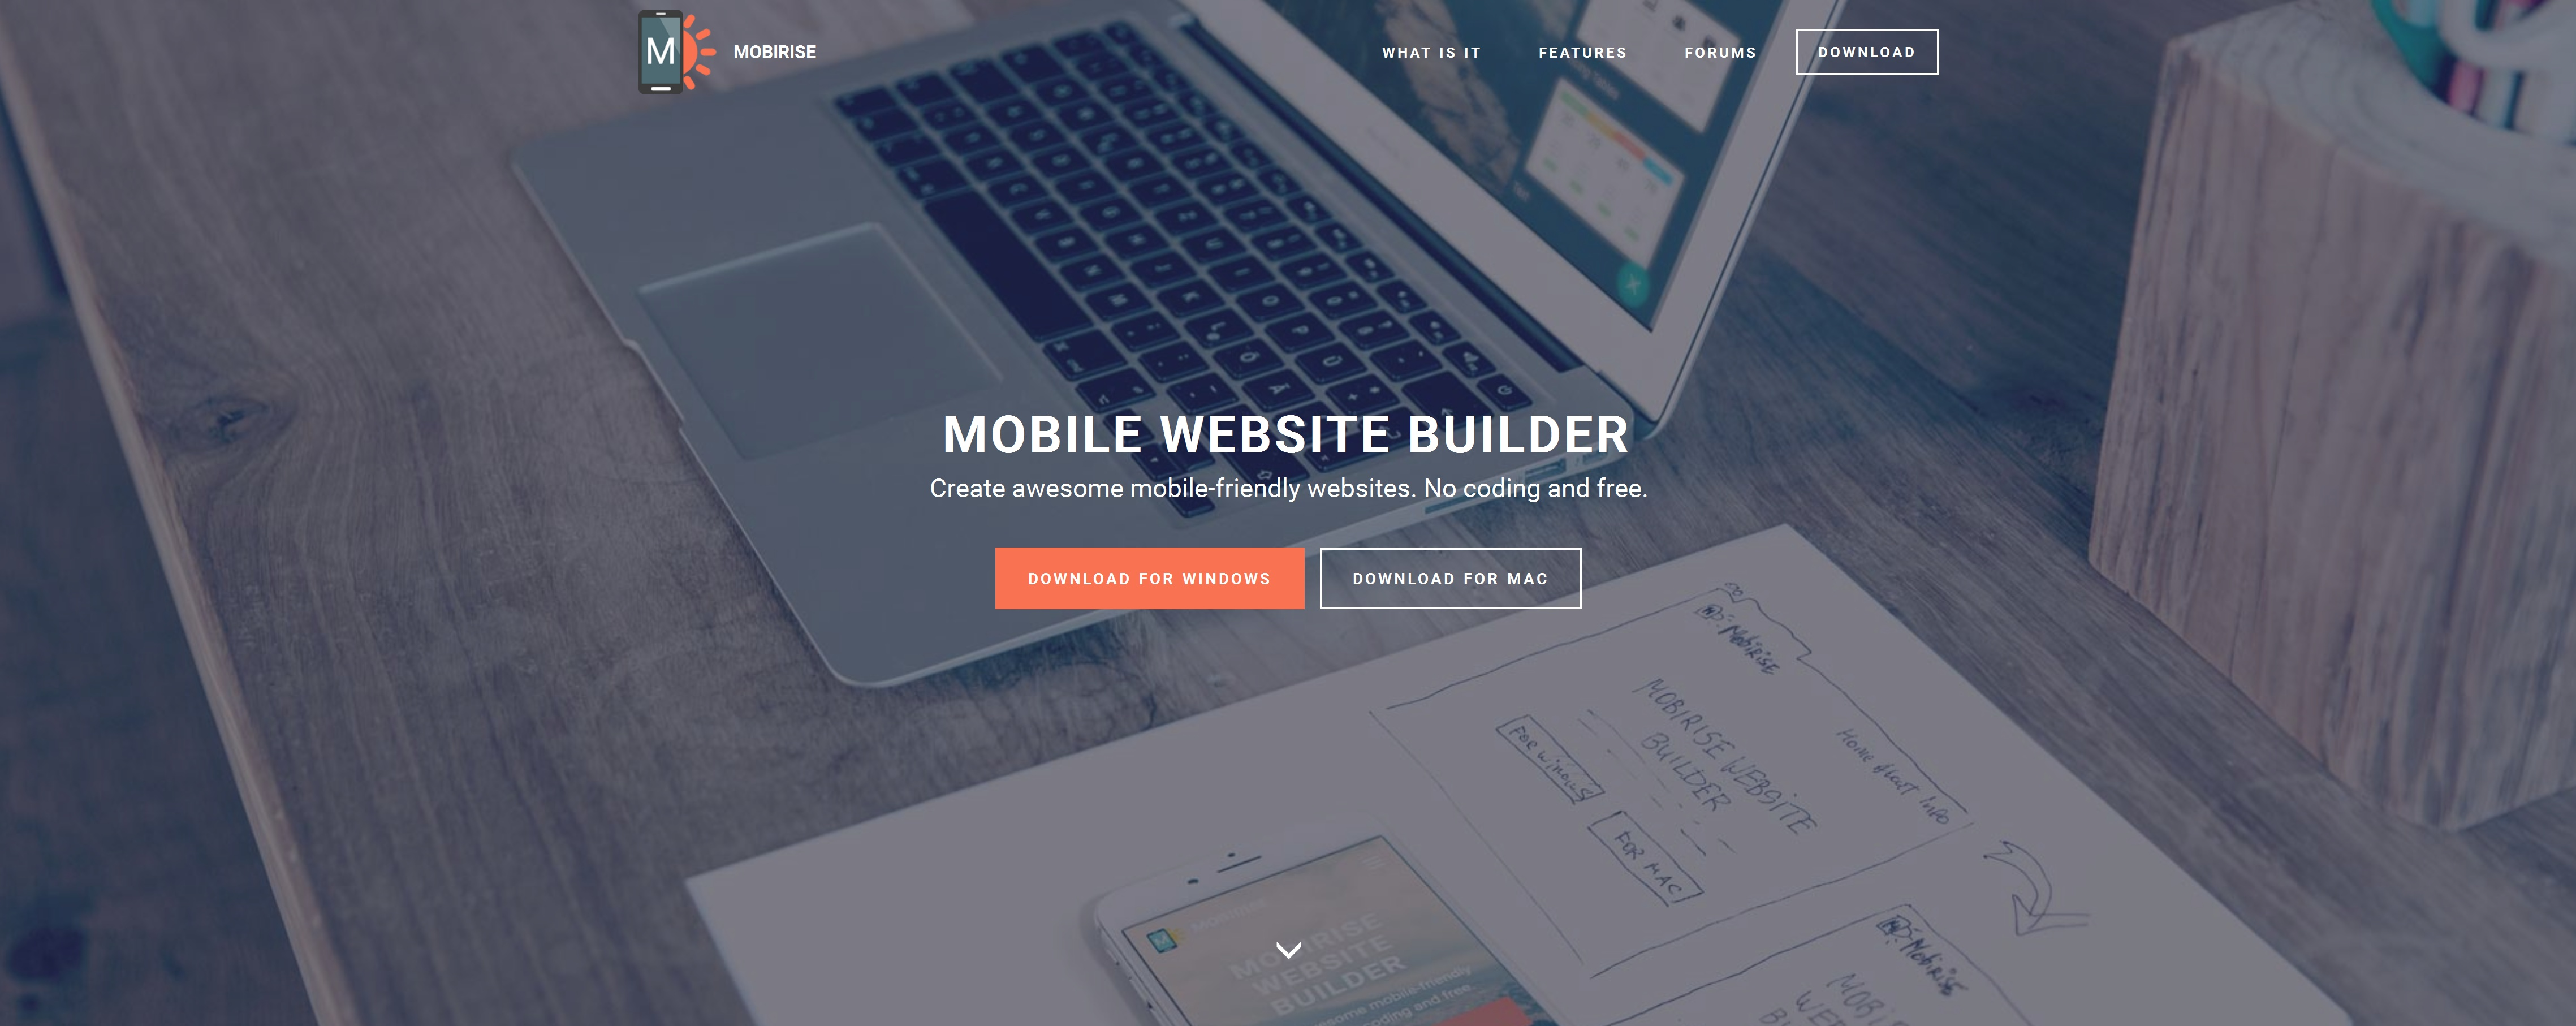 Drag and Drop Mobile Website Generator Software